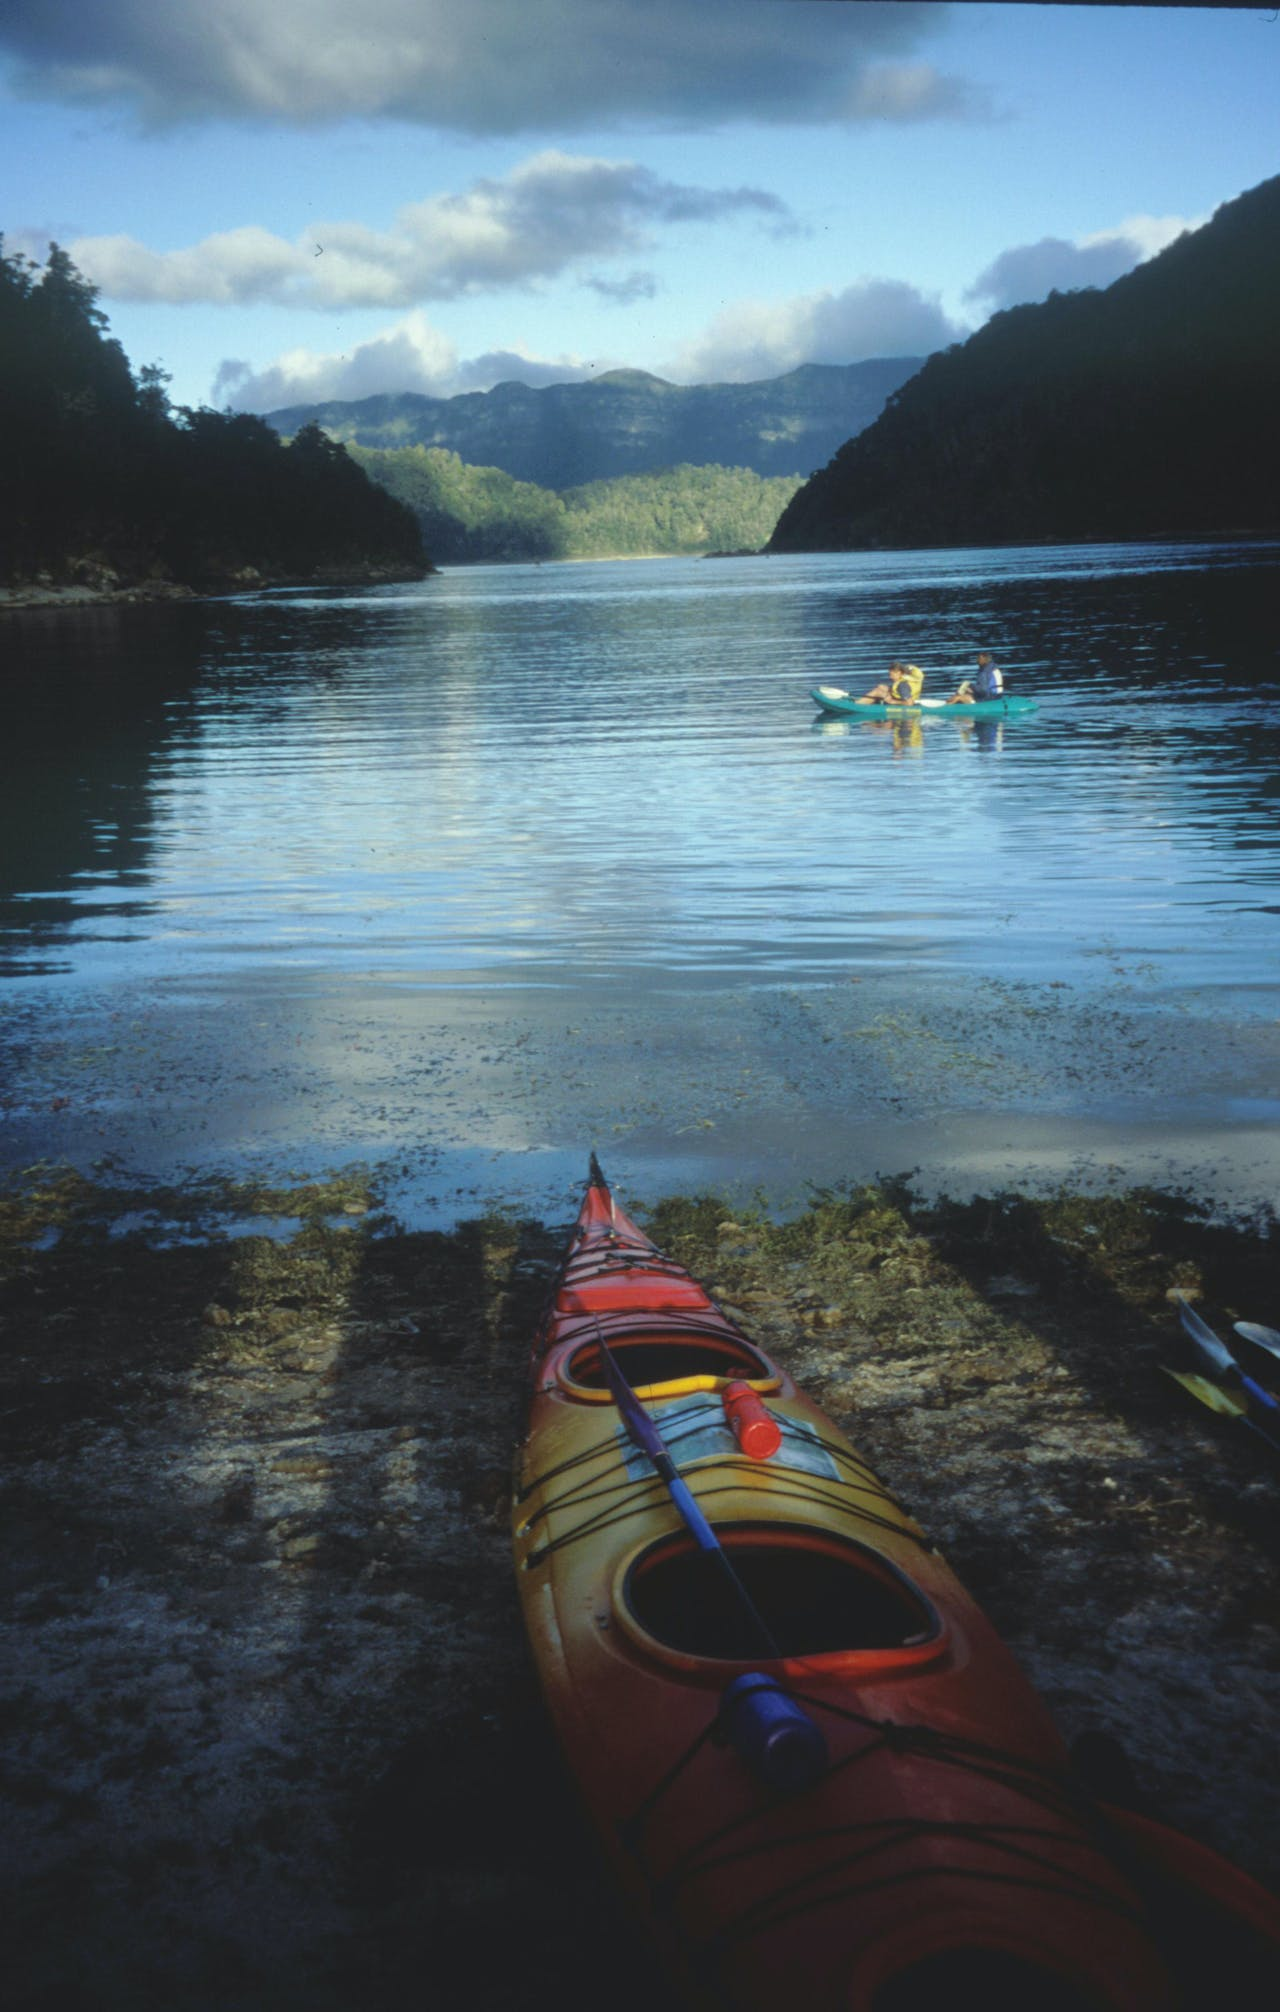 With a multitude of campsites, kayaking Lake Waikaremoana is an alternative way to see the park. Photo: Richard Davies